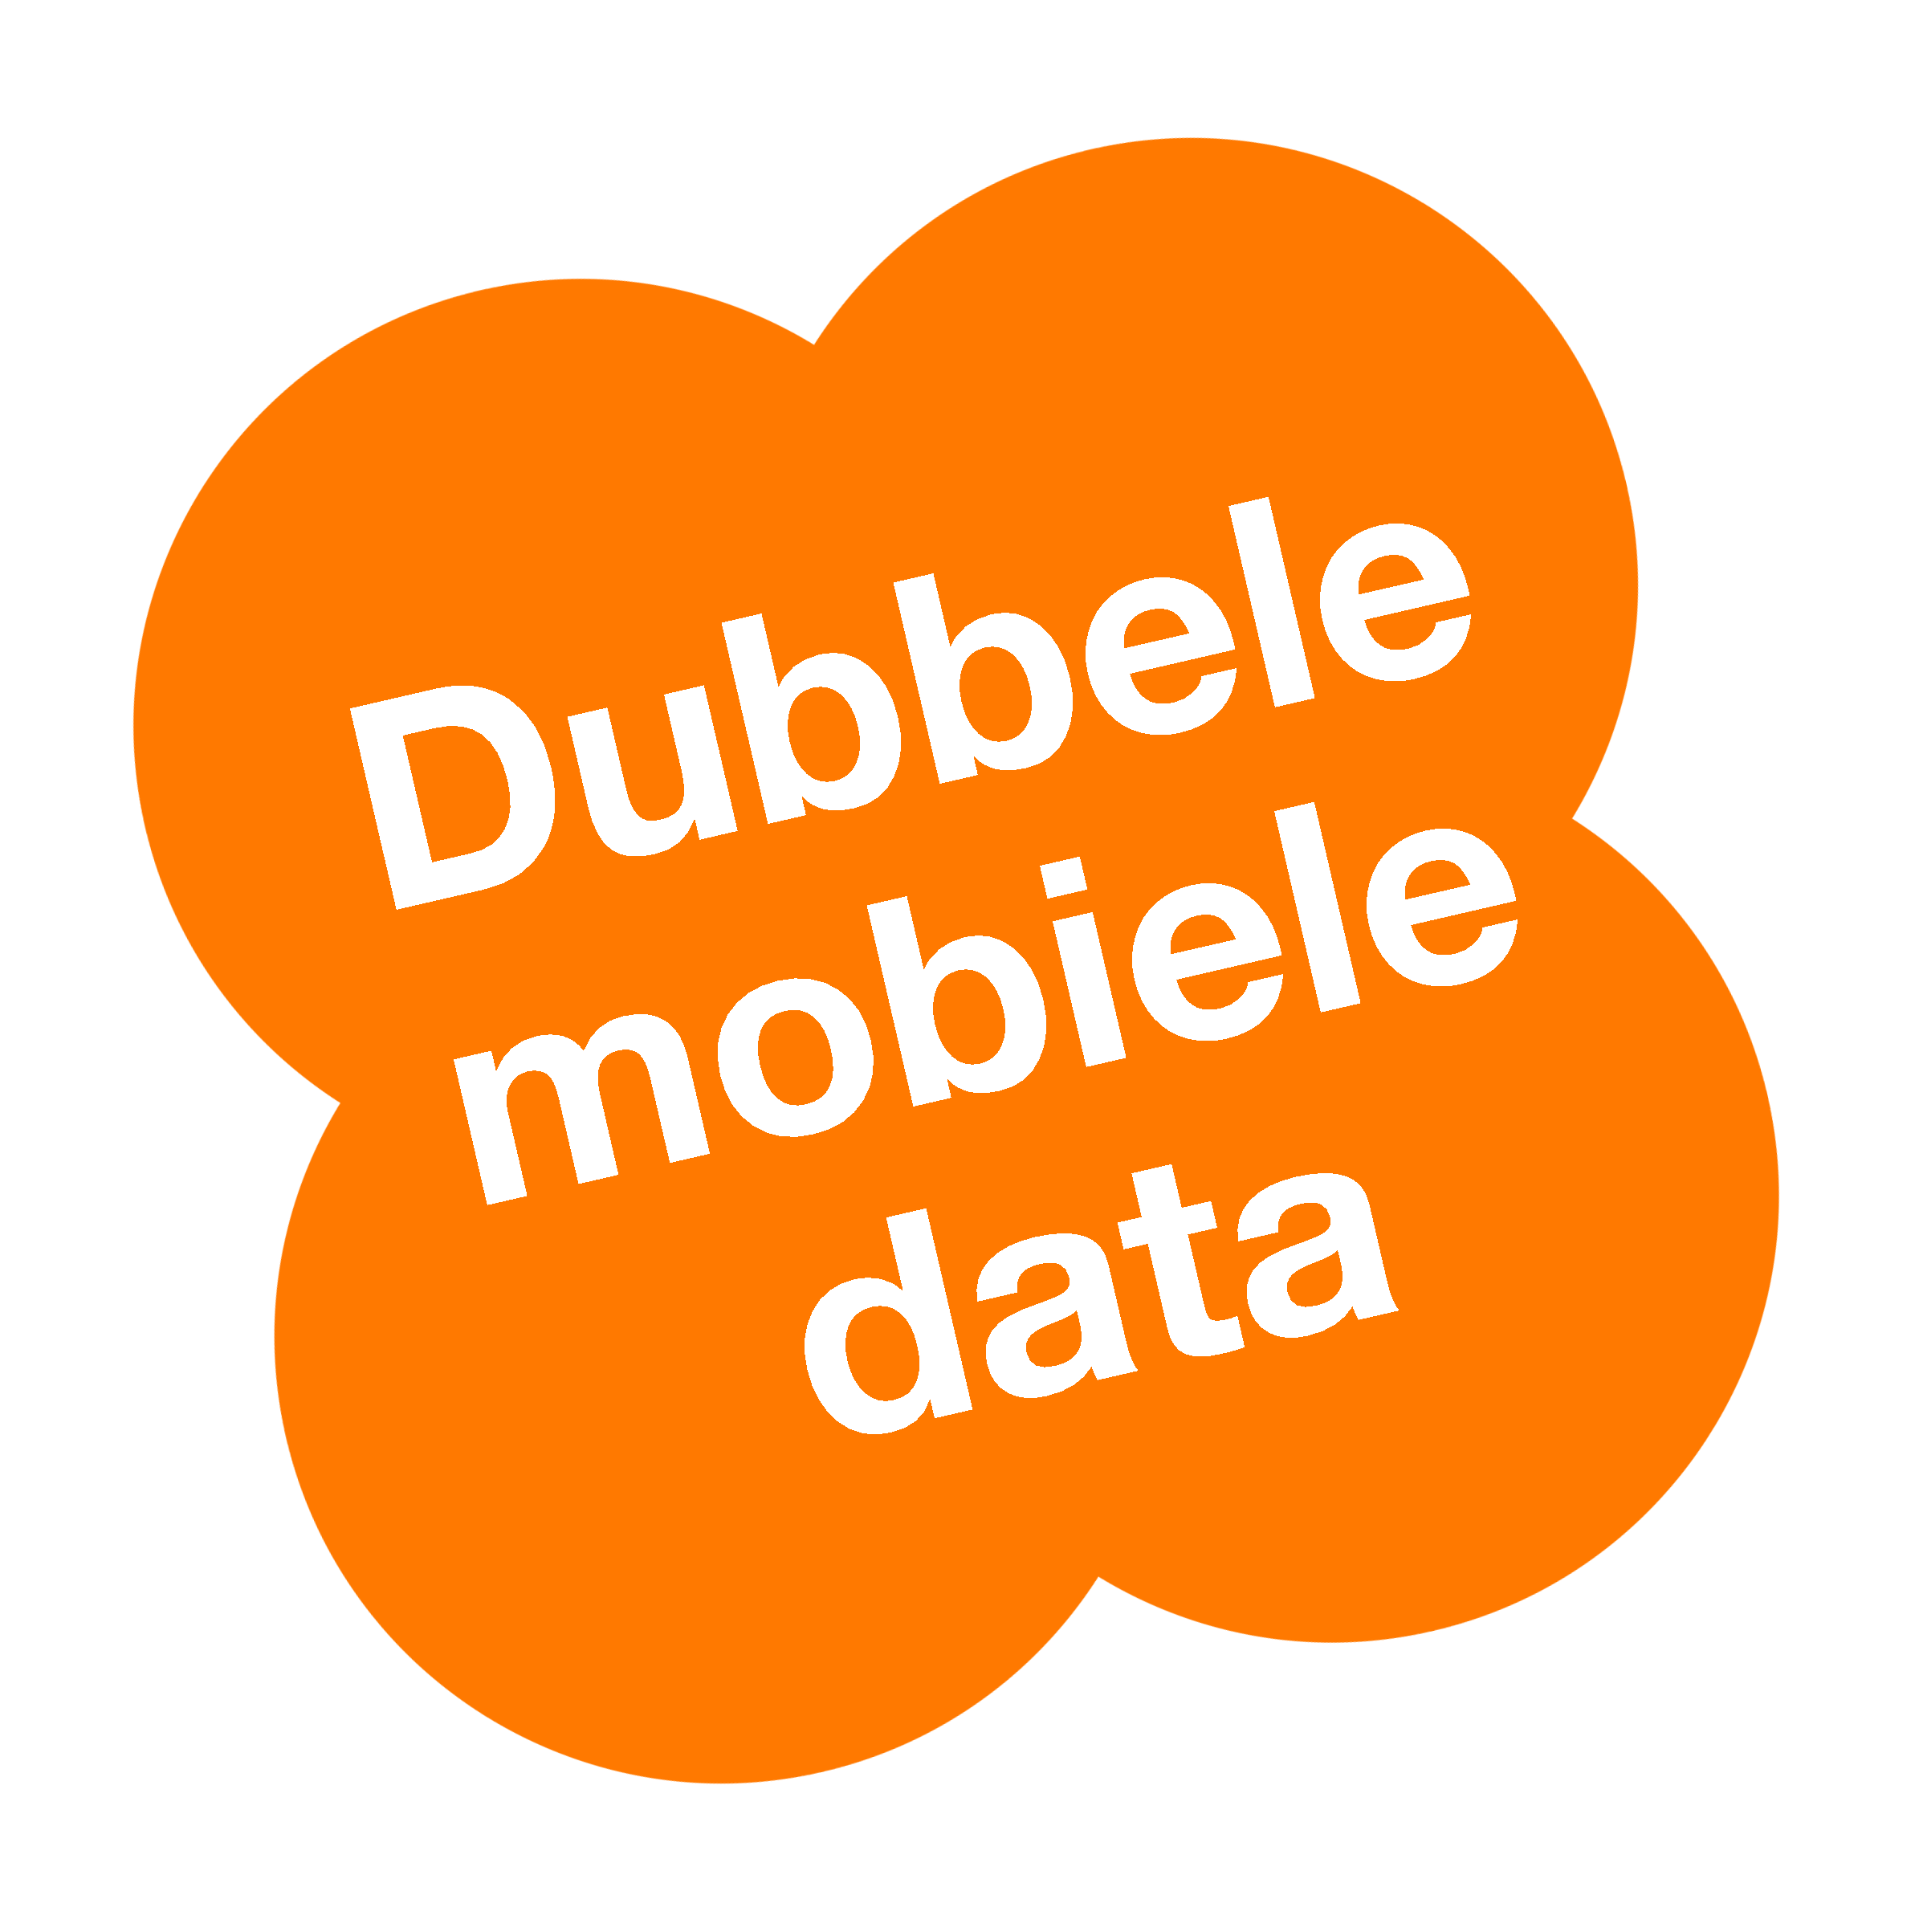 double mobile data